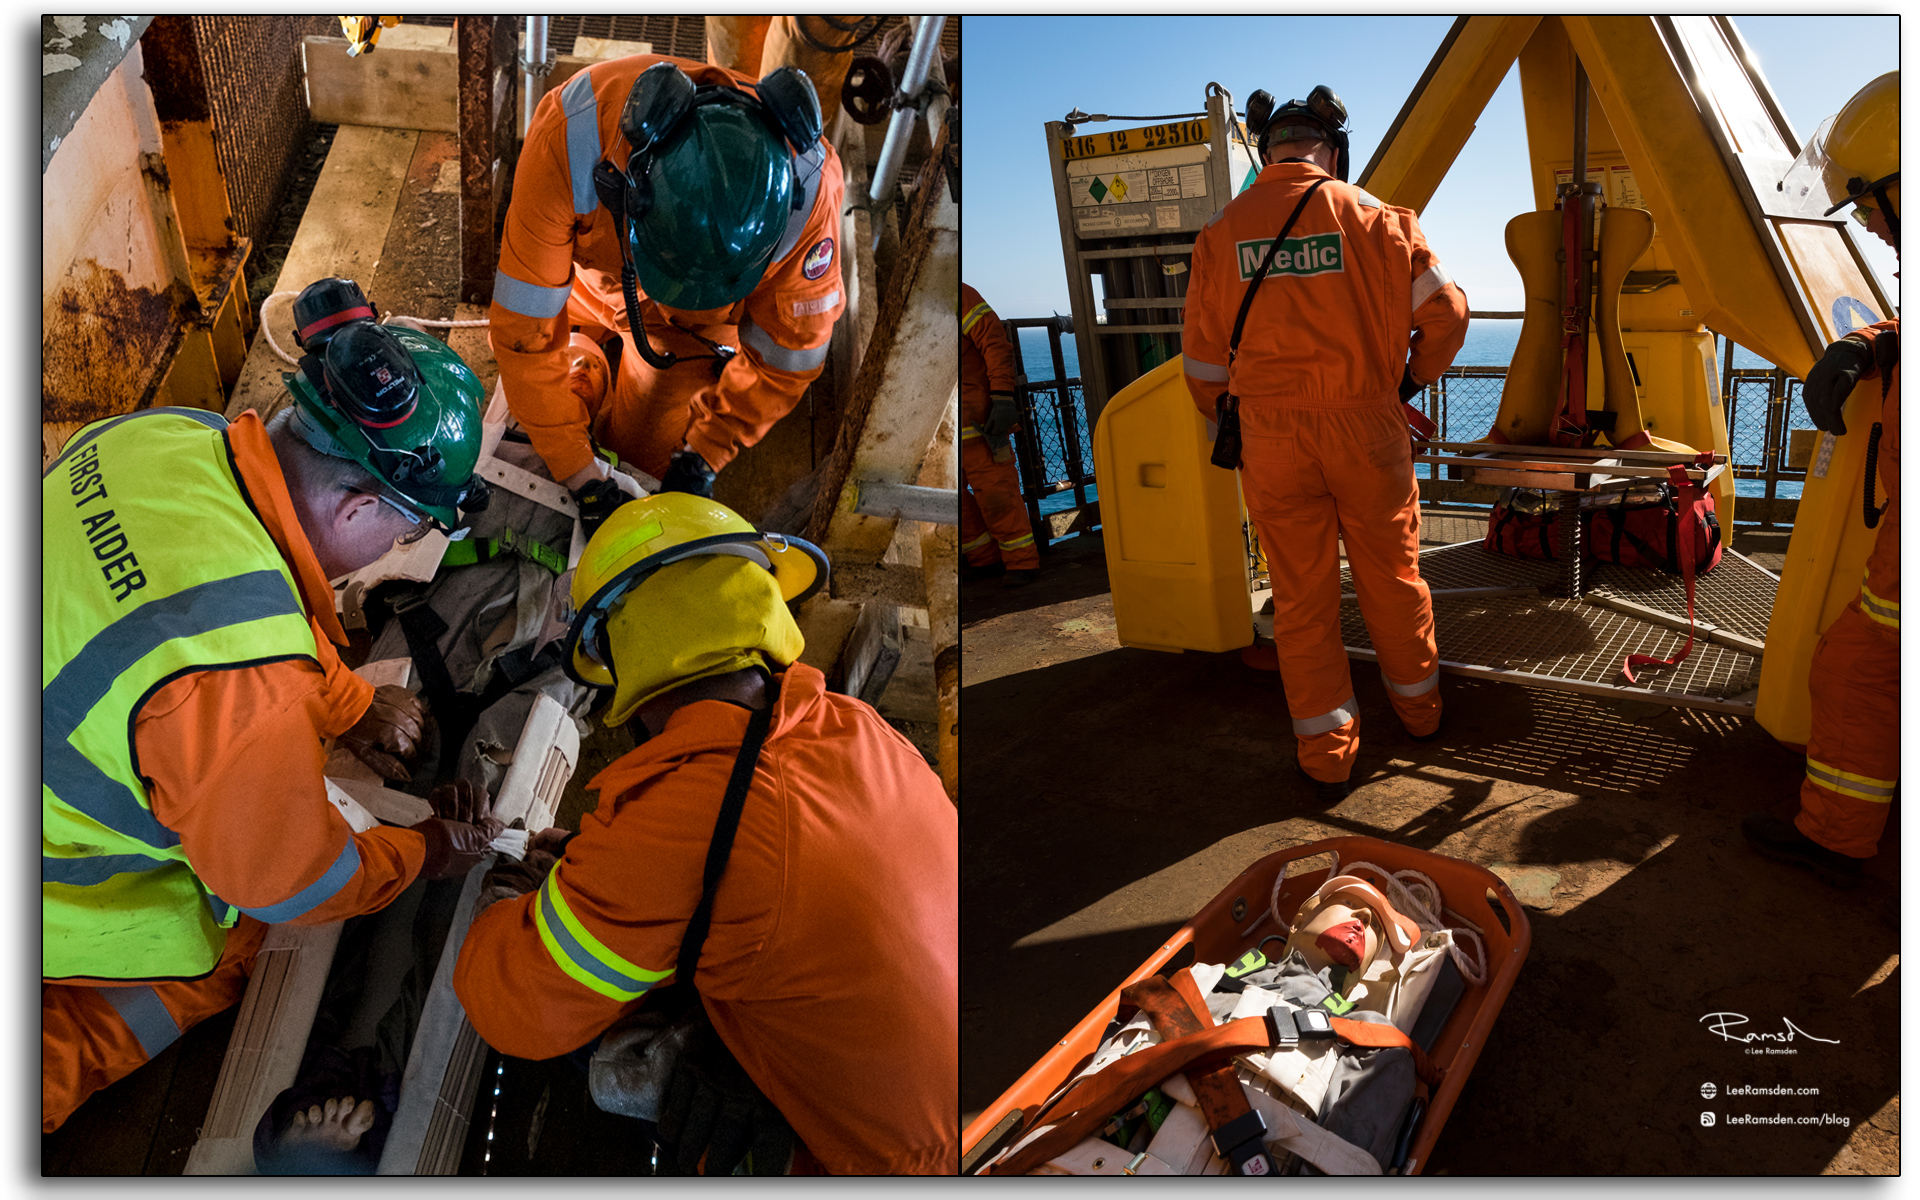 Blog, fireteam, emergency response, firstaider first aid, medic, north sea, photo by Lee Ramsden